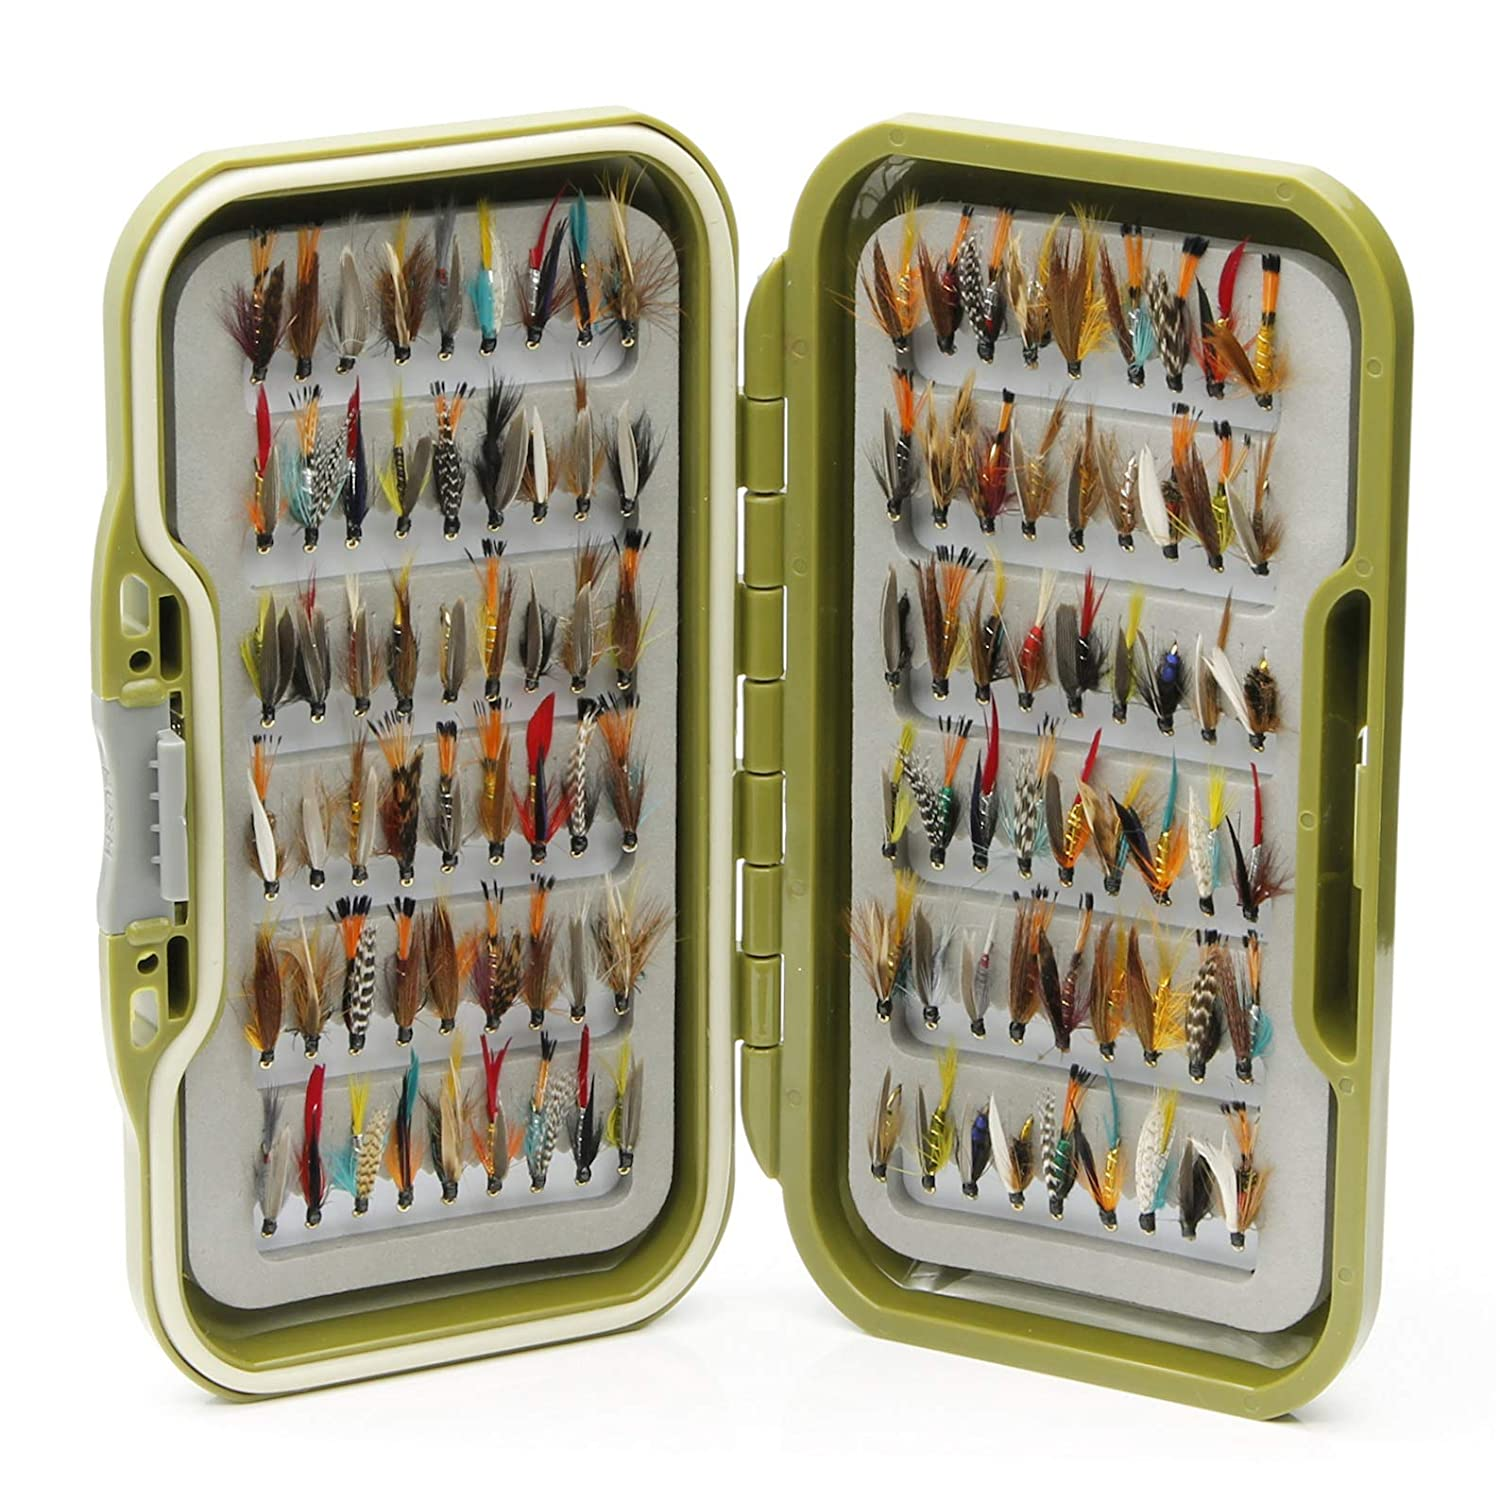 10 25 or 50 x Mixed Winged Wet Flies for Trout Fly Fishing Waterproof Fly Box